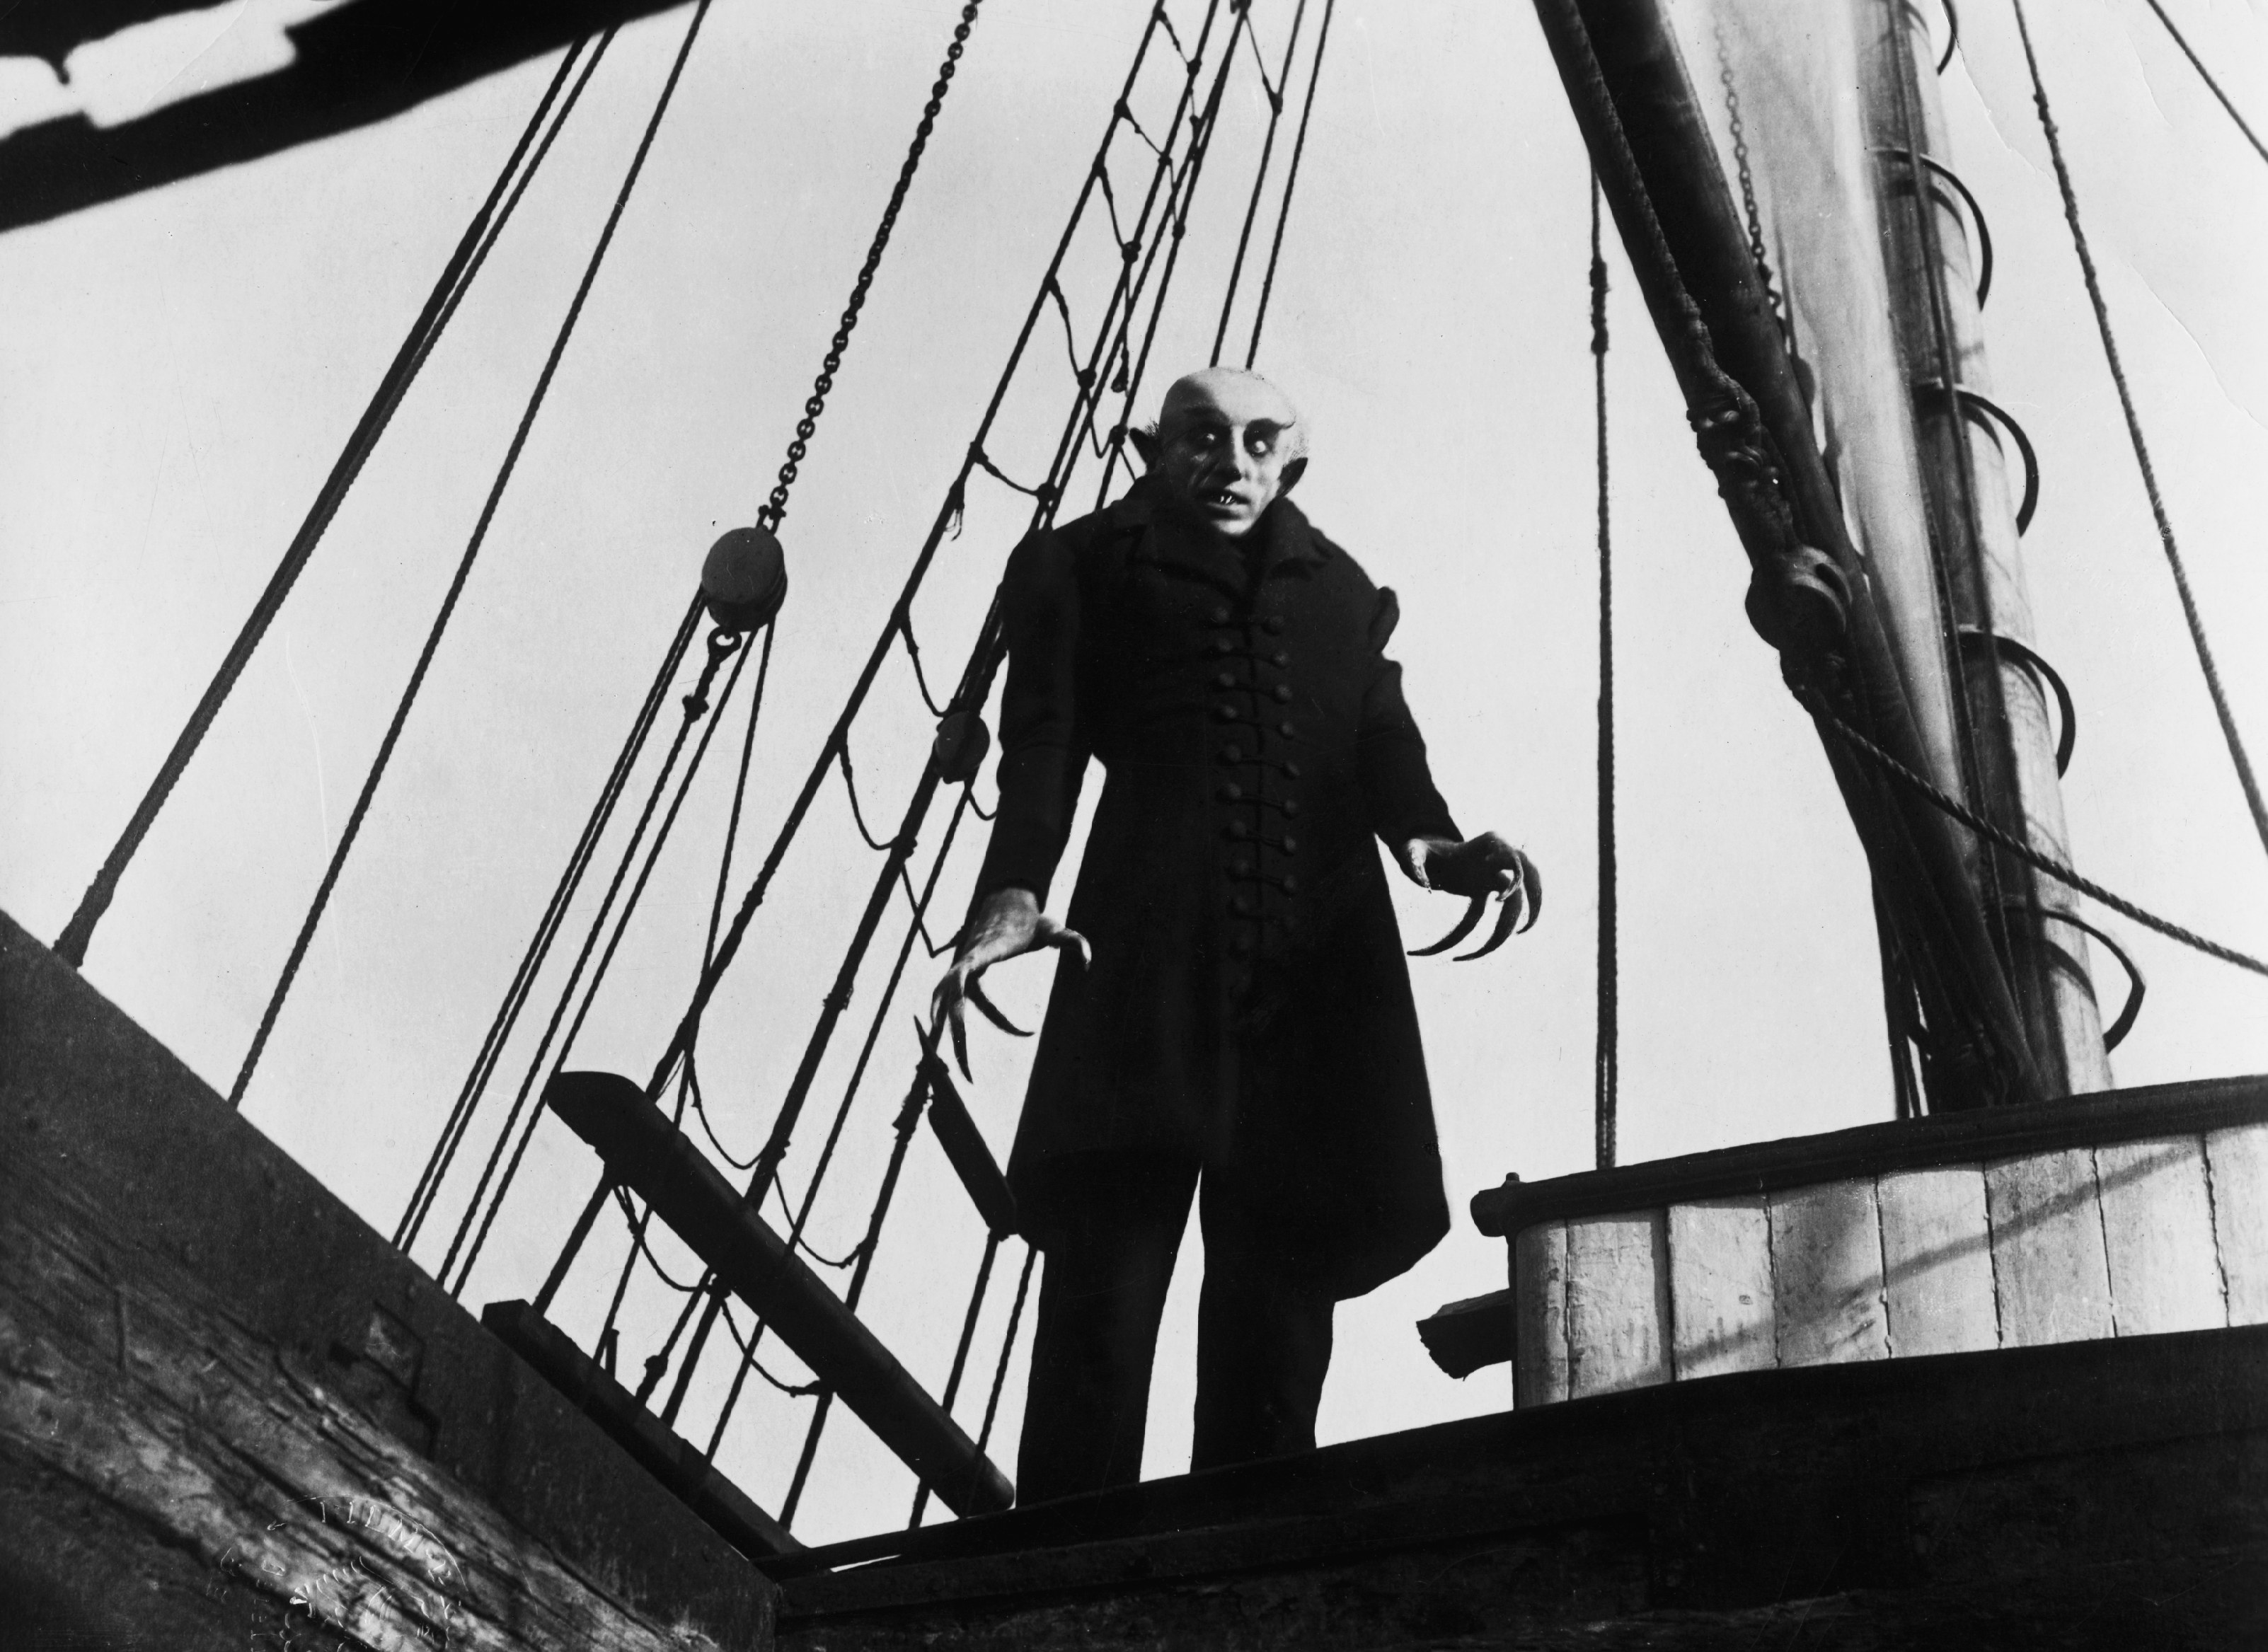 Production photo from the film Nosferatu (Germany 1921, directed by Friedrich Wilhelm Murnau)